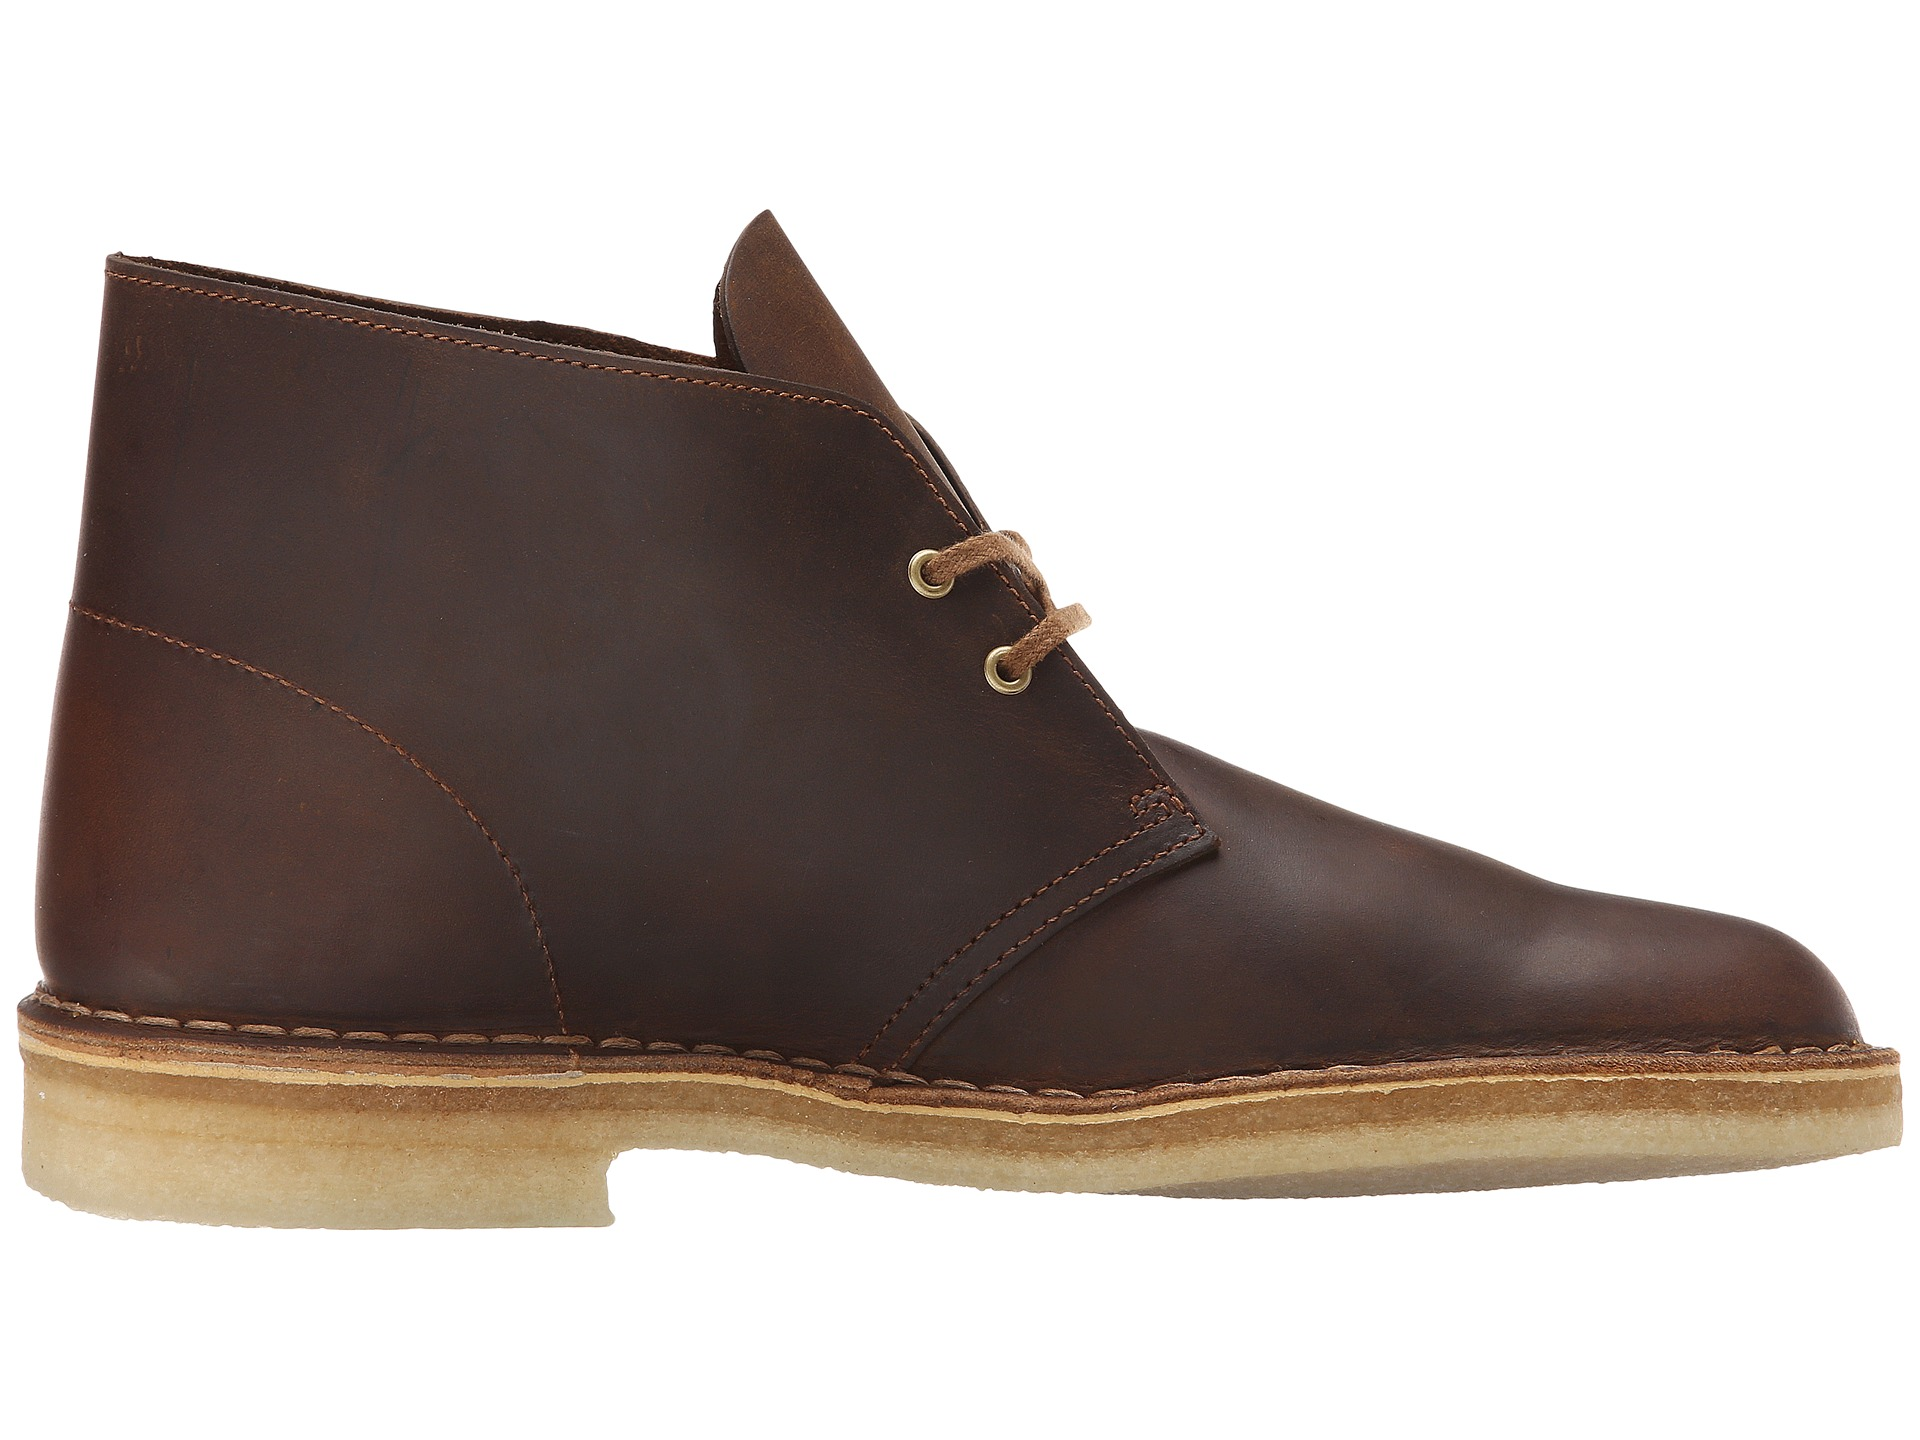 Clarks Desert Boot - Zappos.com Free Shipping BOTH Ways